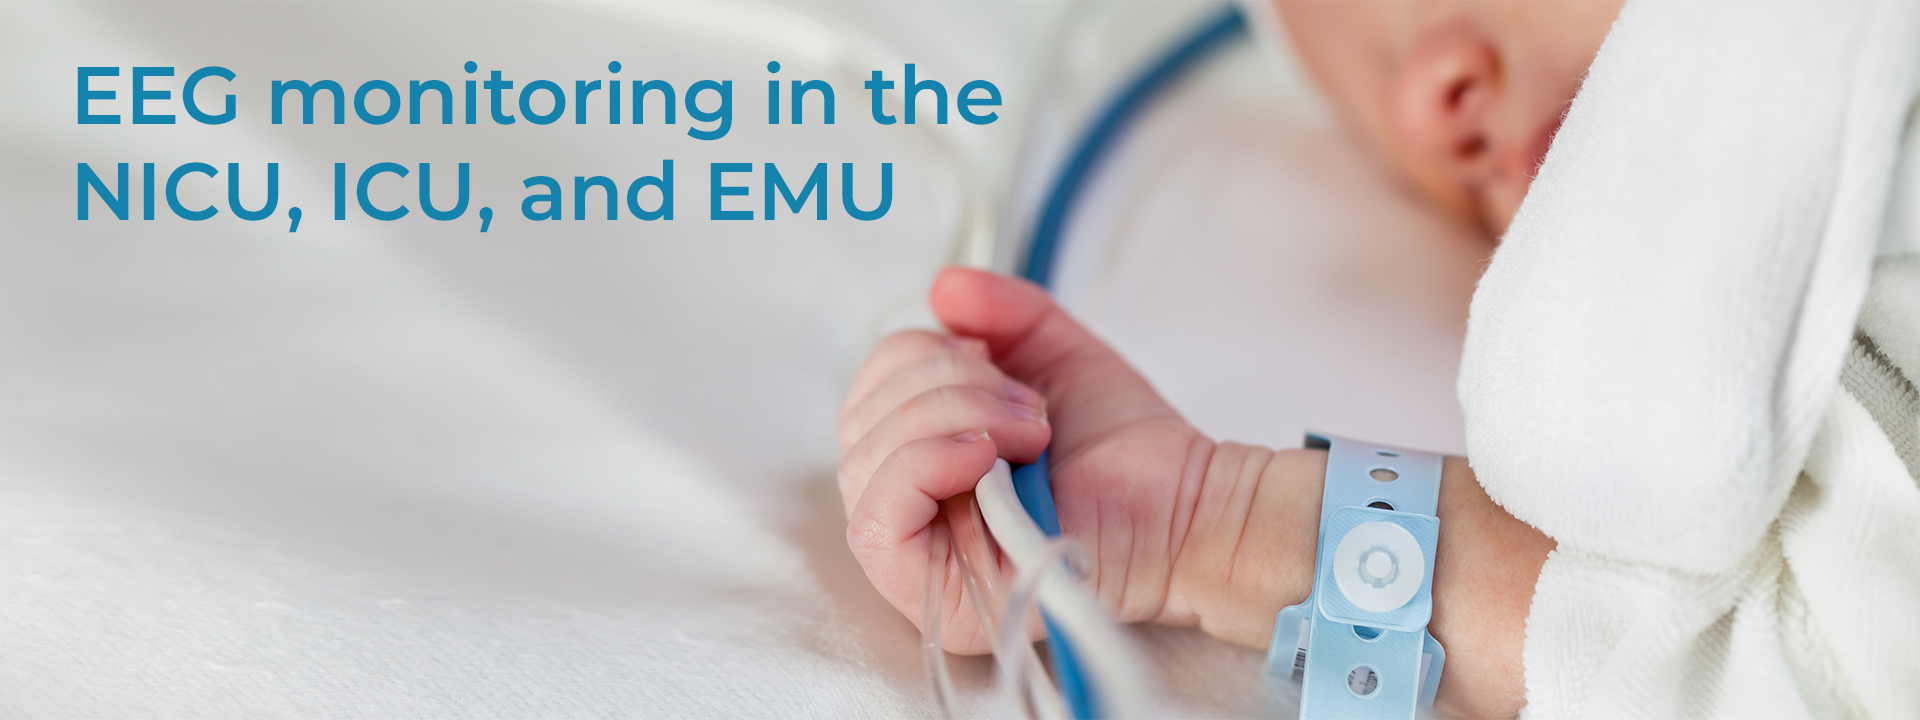 EEG Monitoring in NICU, ICU, EMU